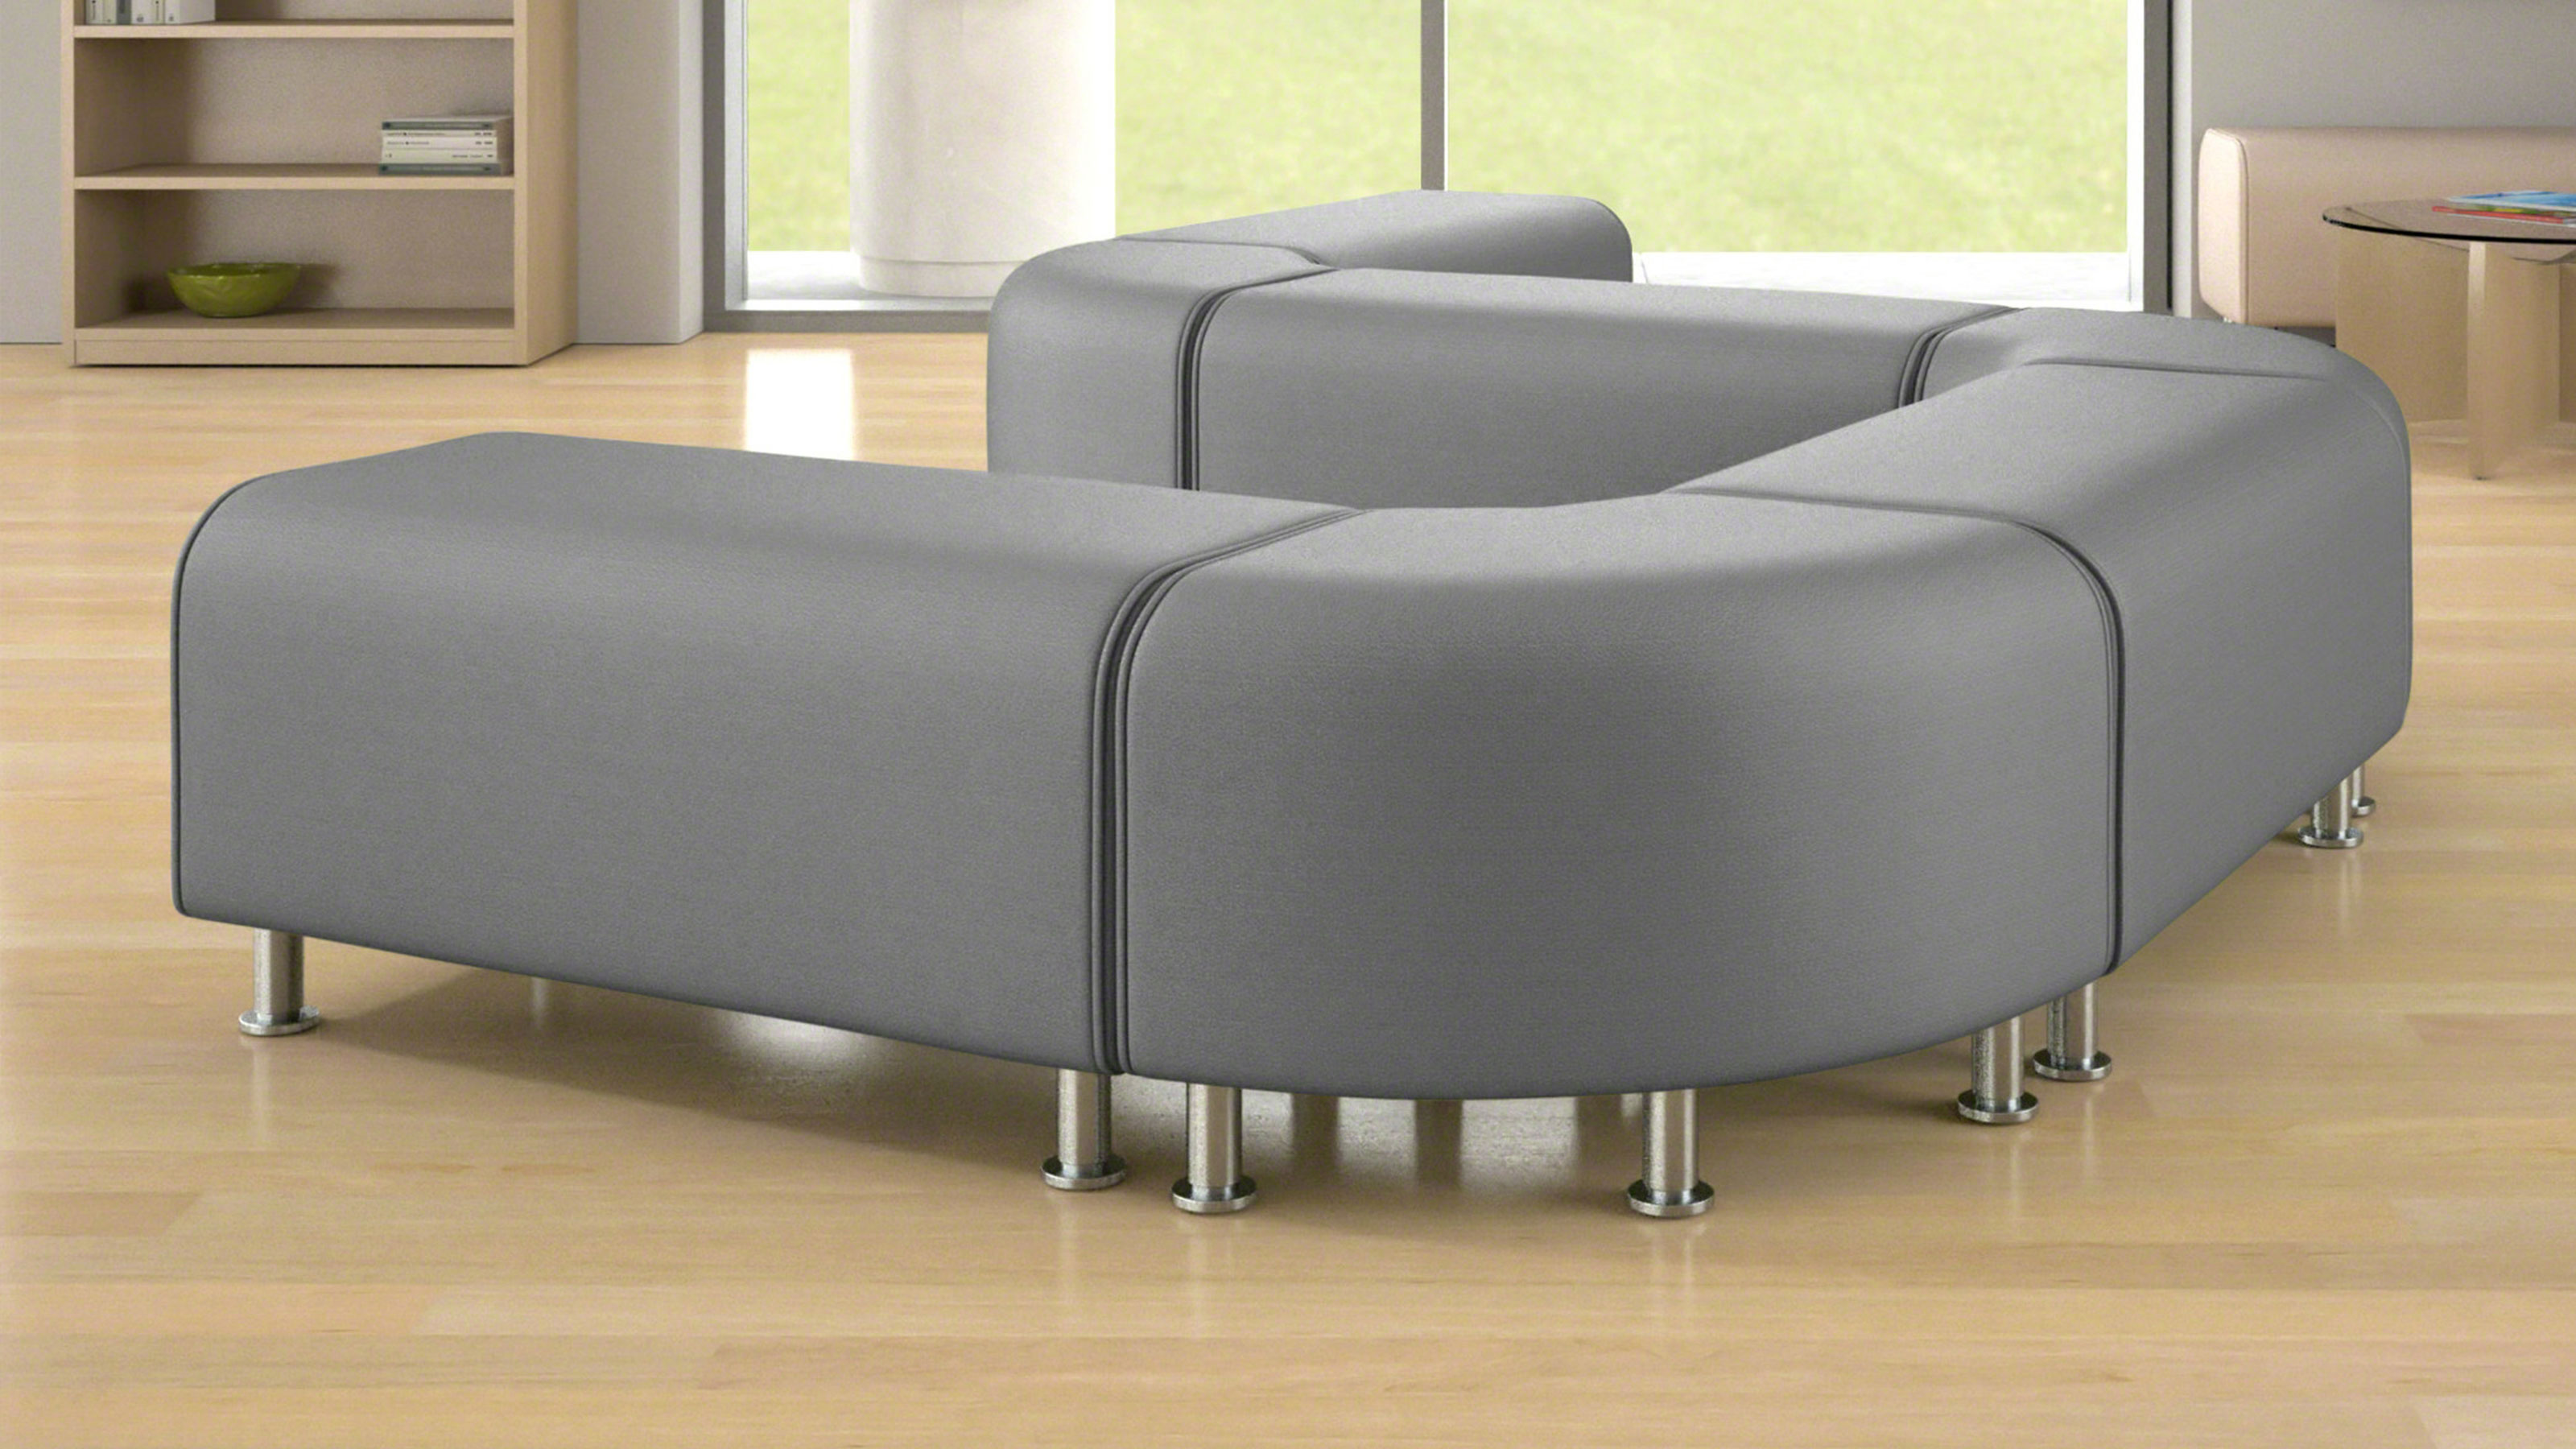 Campfire Ottoman Campfire Ottoman Modern Ottomans And